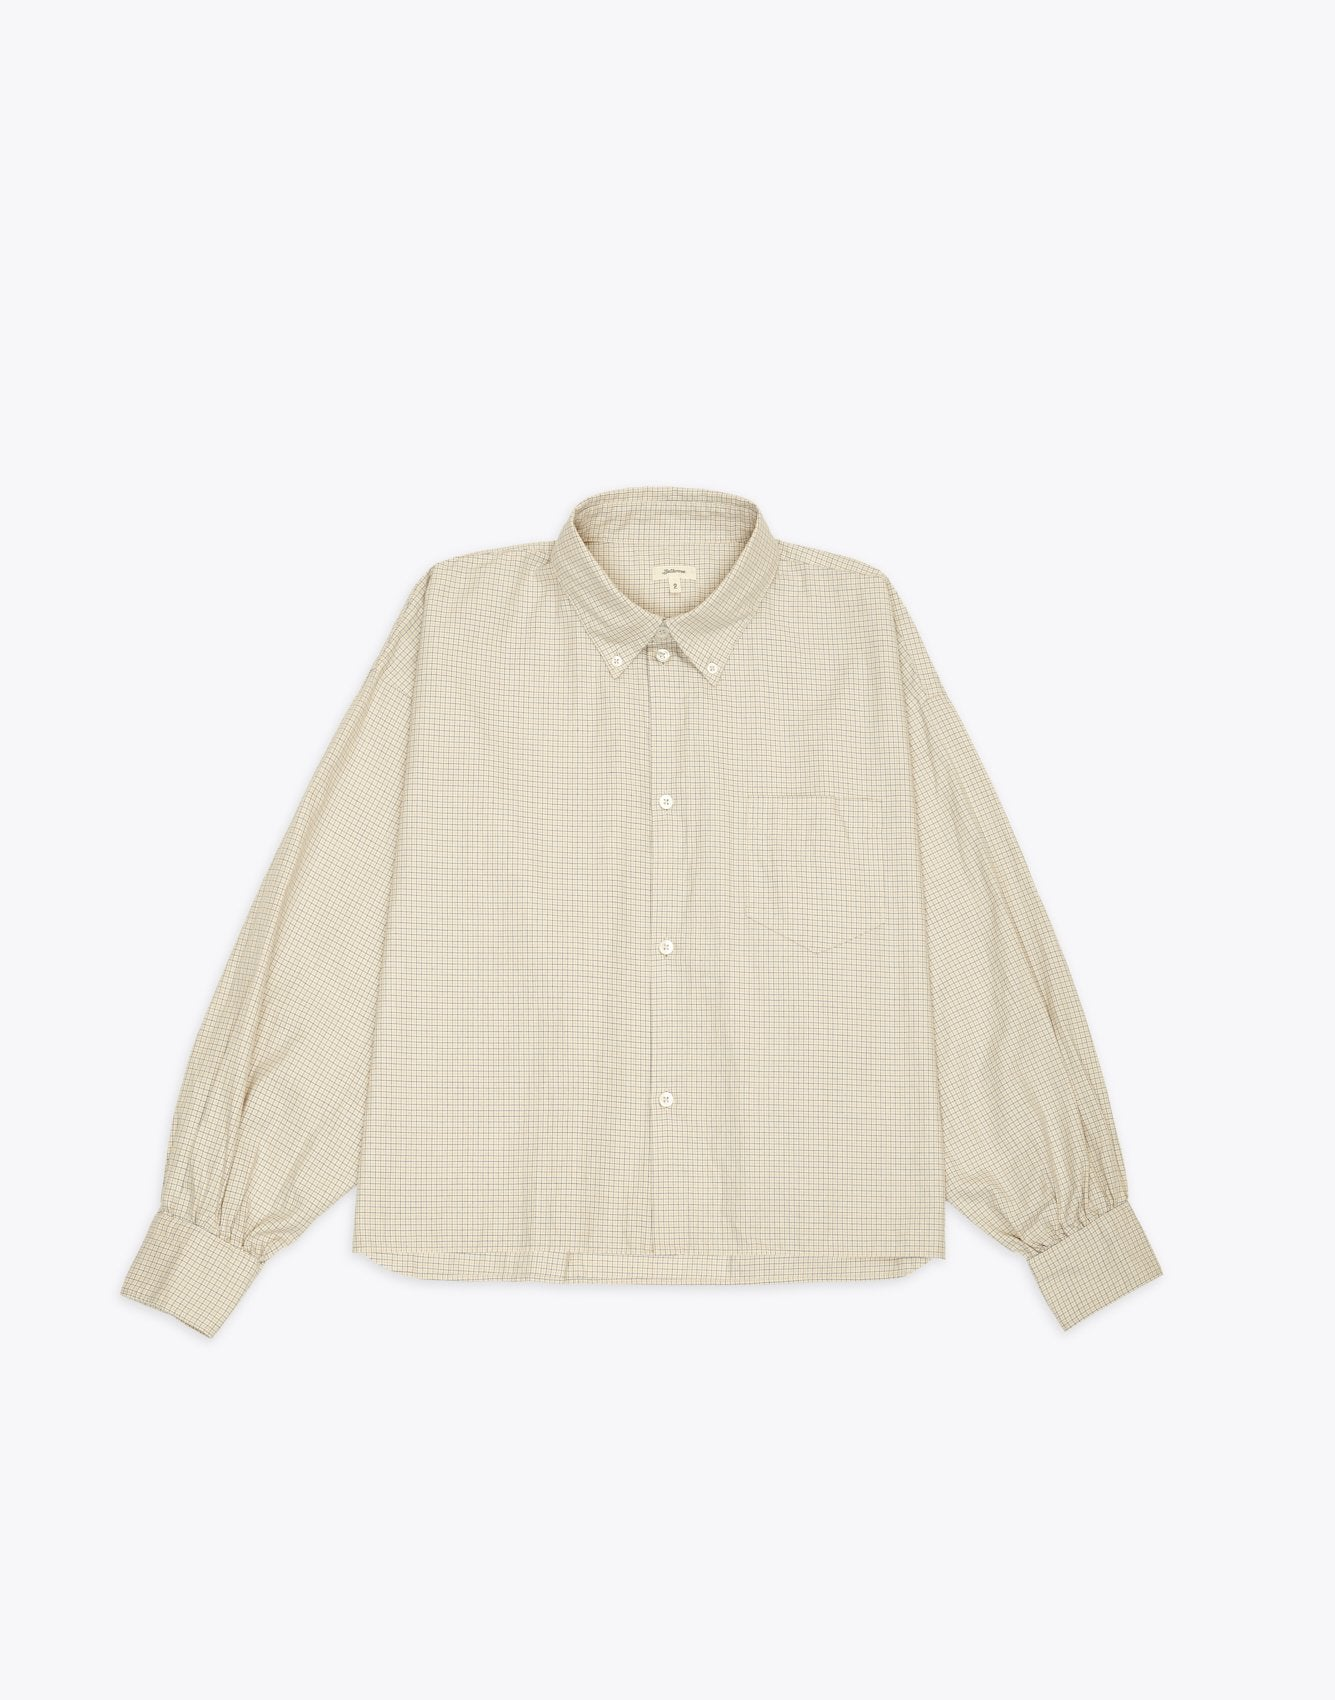 Bellerose cropped checked shirt for women